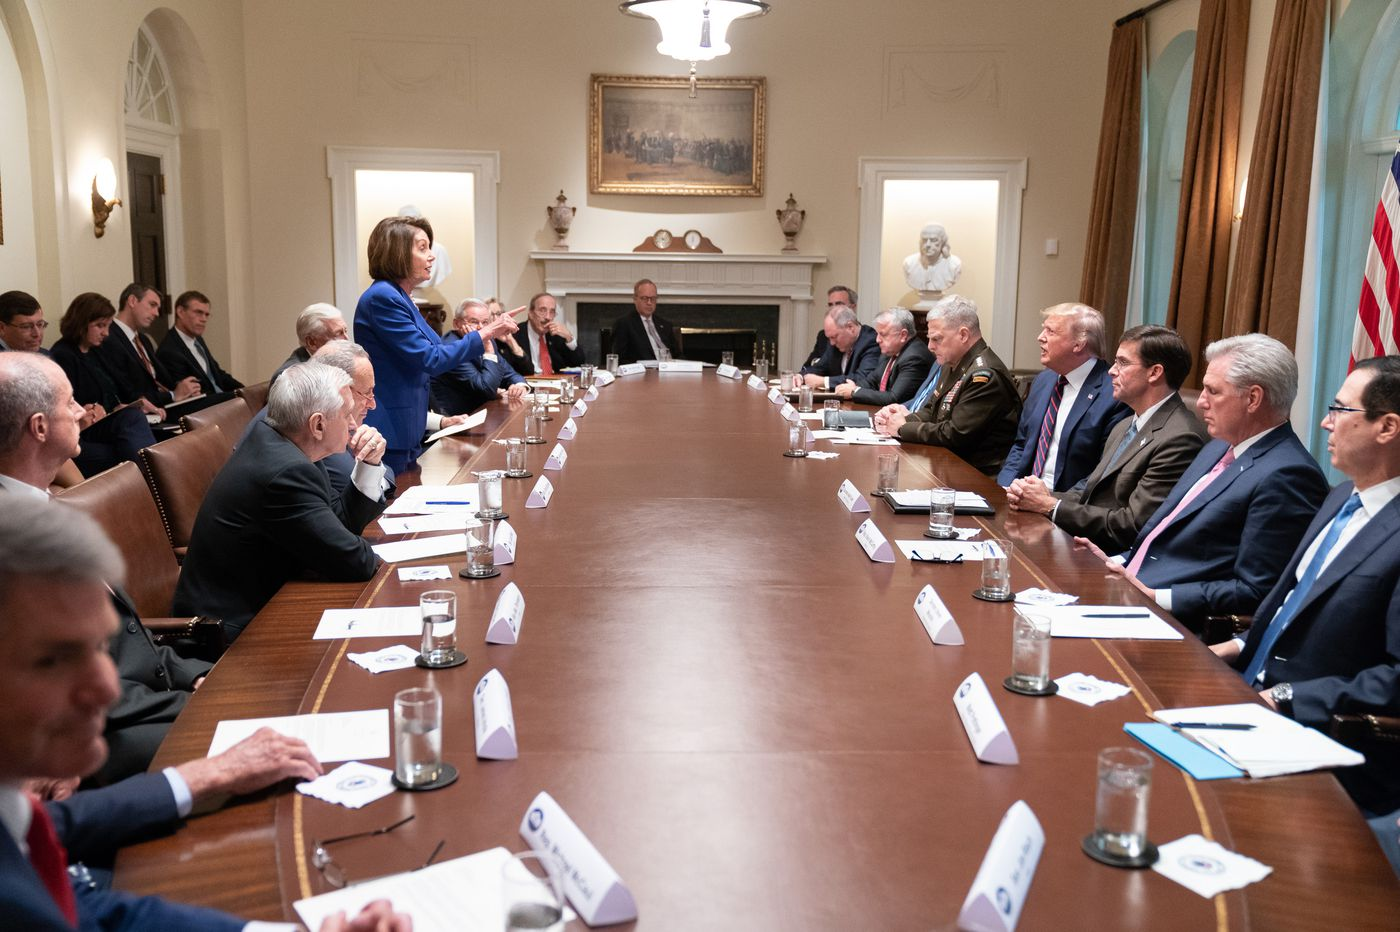 That Nancy Pelosi Twitter picture with Trump: Can we have some more of that? | Maria Panaritis